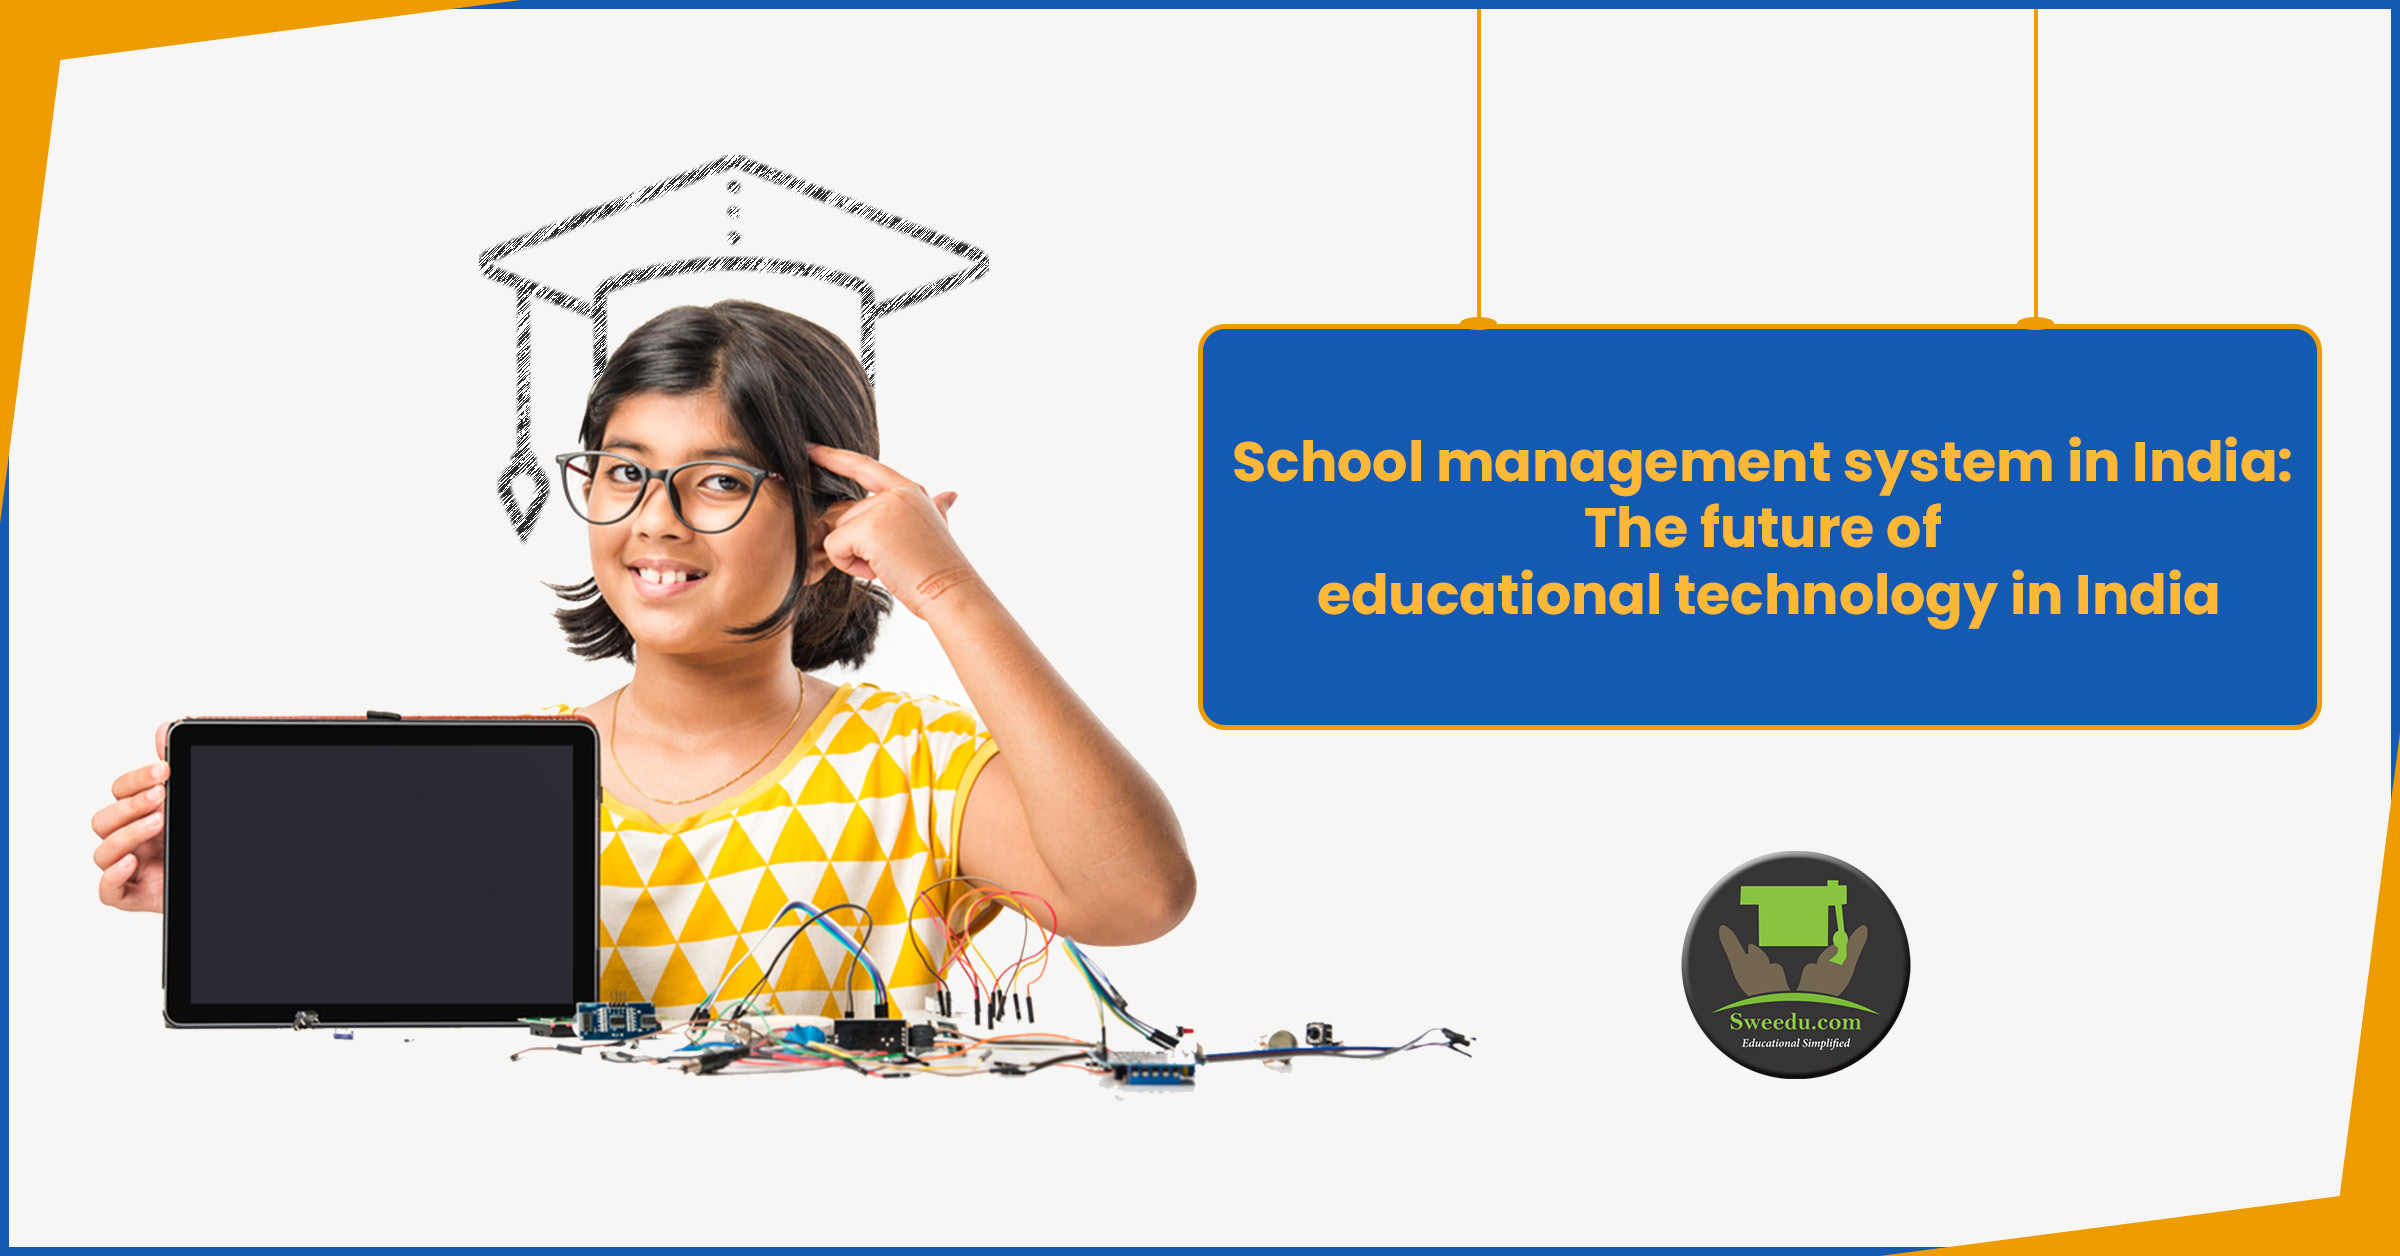 School management system in India: The future of educational technology in India